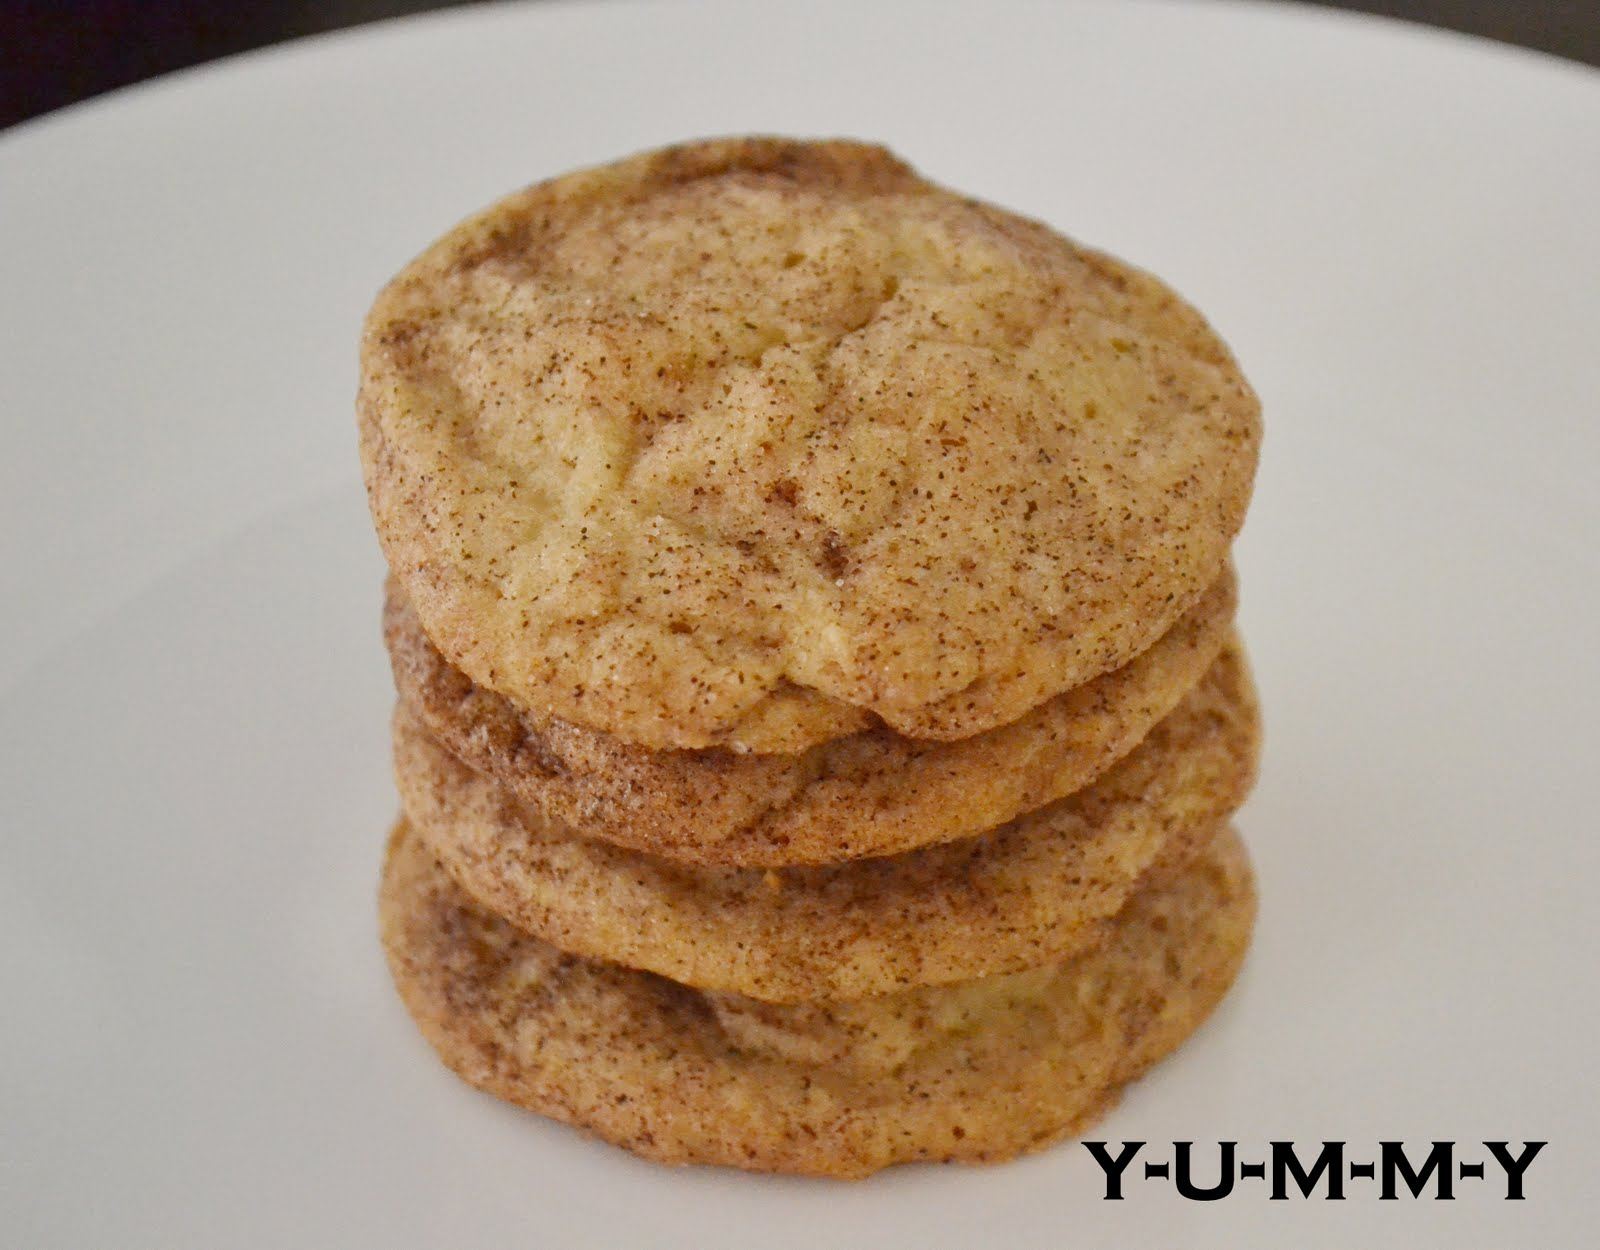 Y-U-M-M-Y: Cinnamon Sugar Butter Cookies